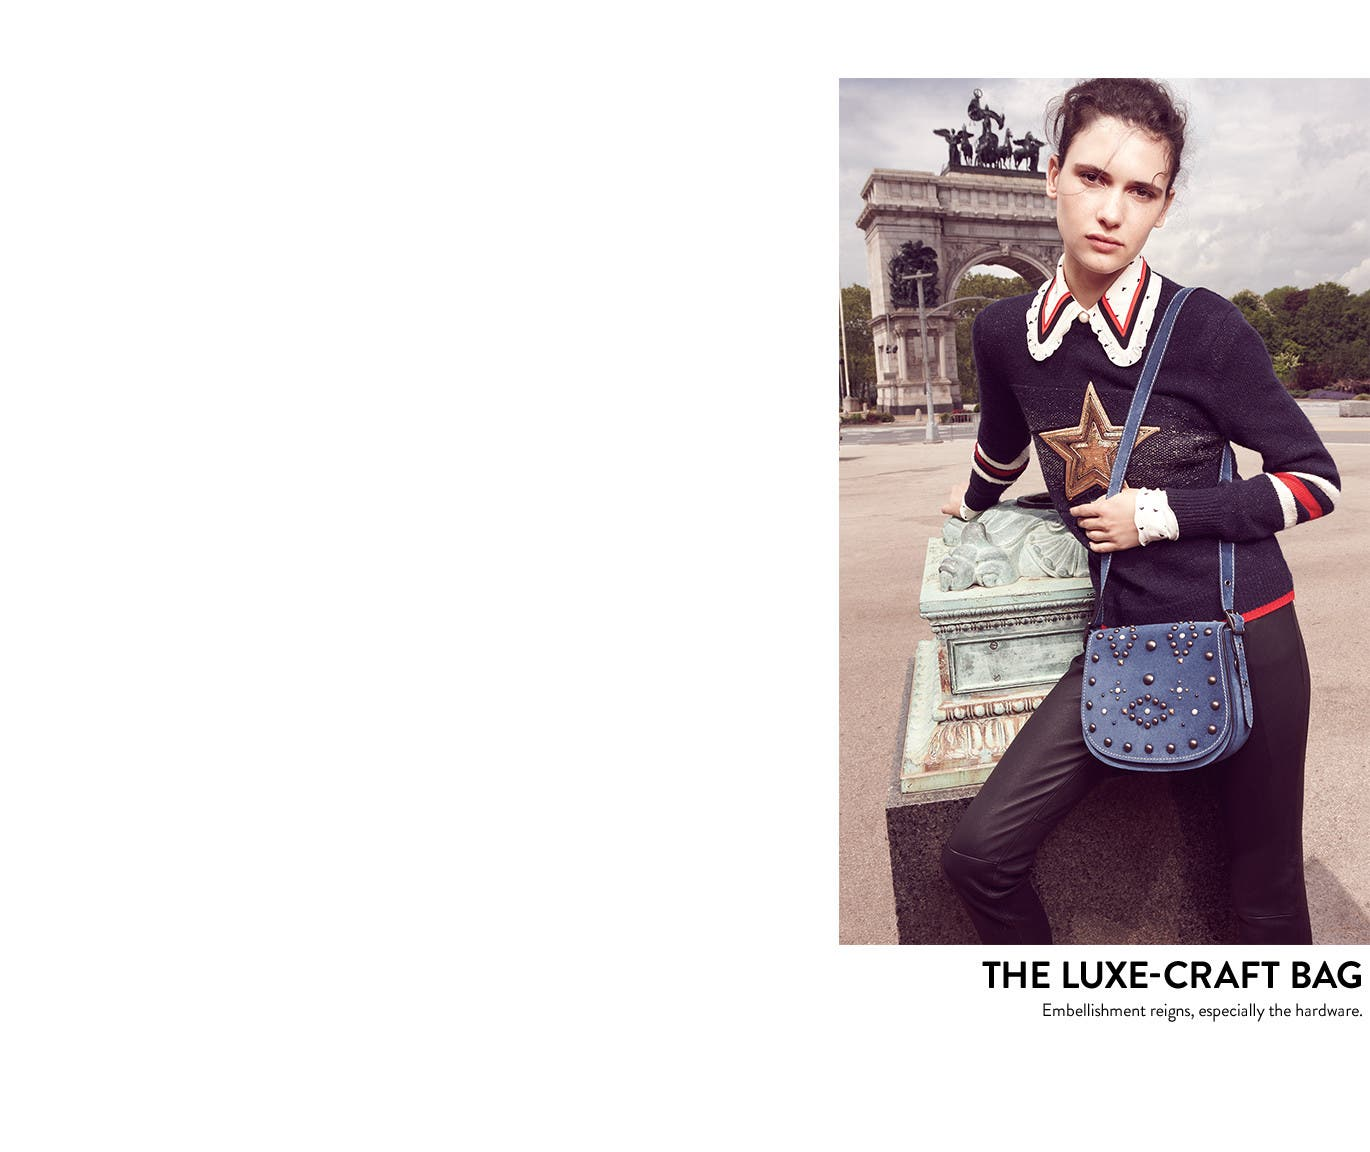 The luxe-craft bag.